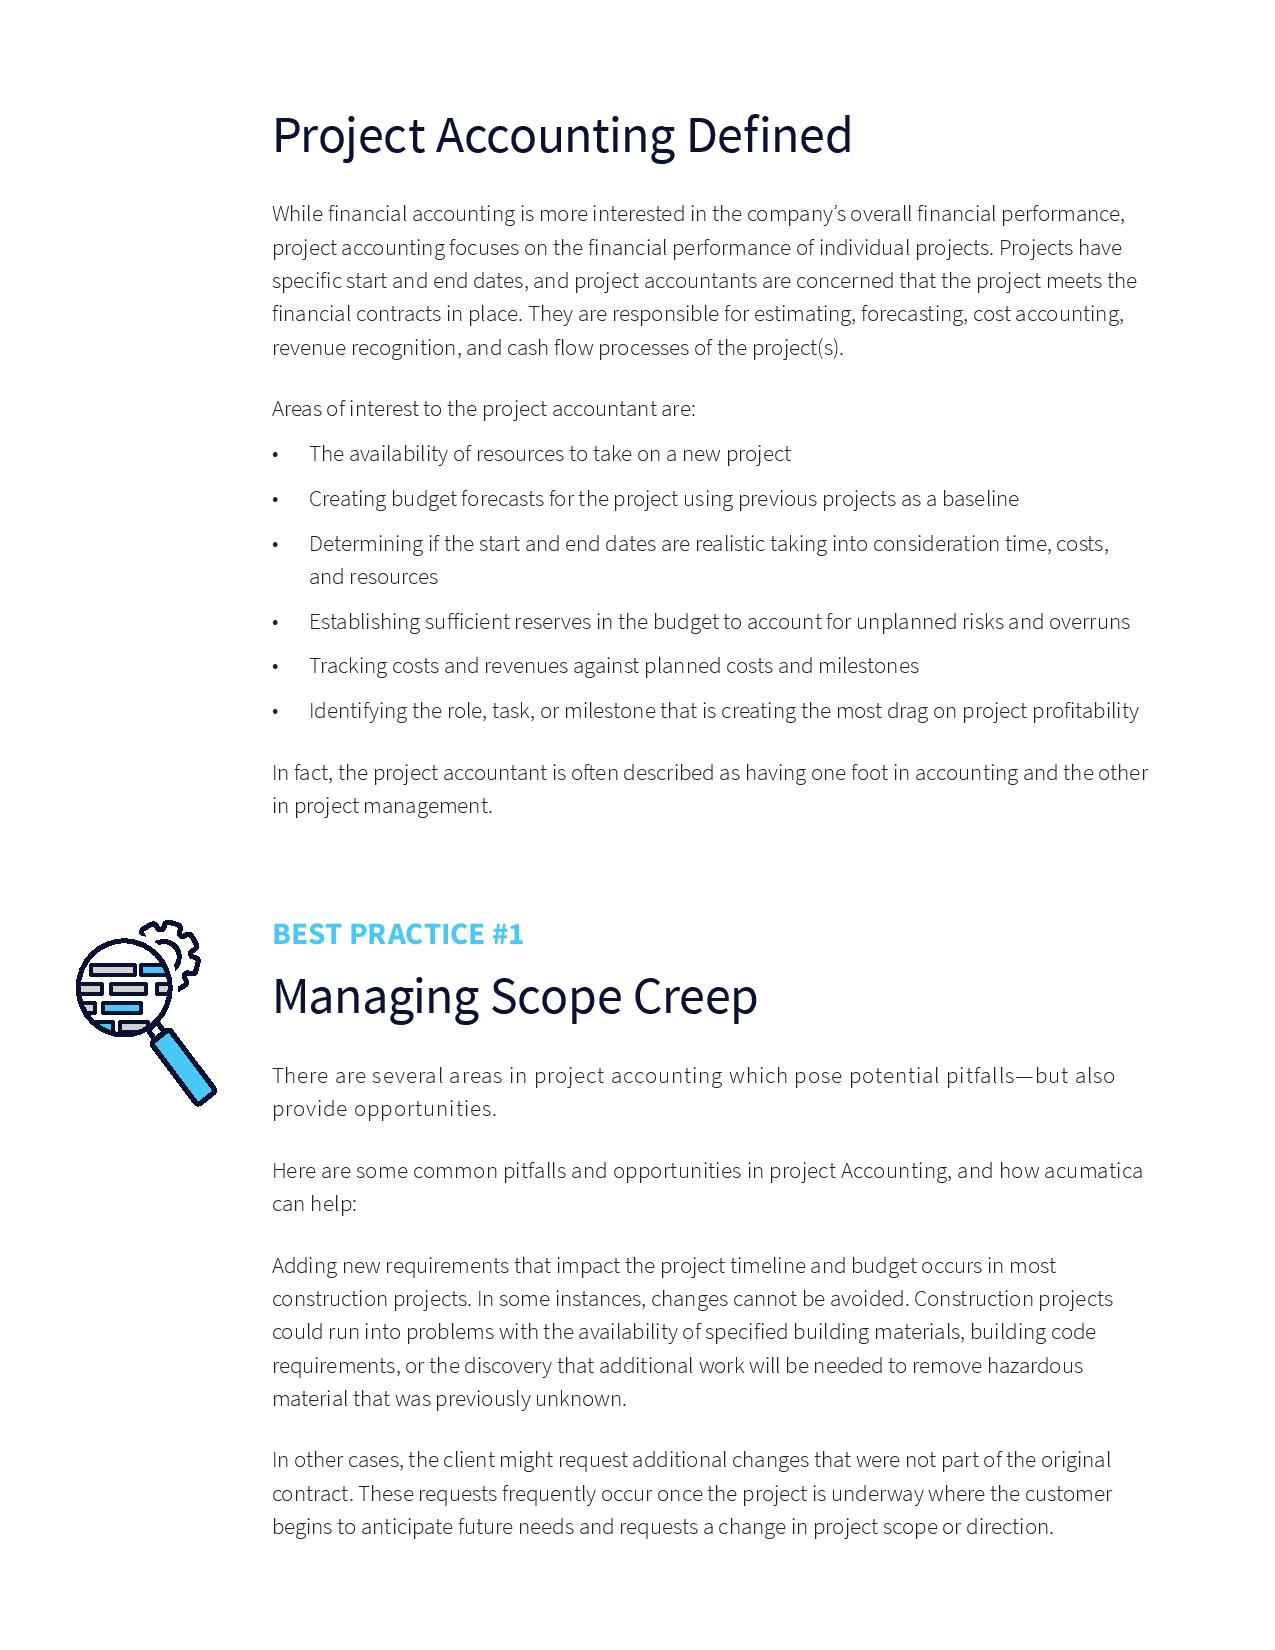 Project Accounting Best Practices Made Simple, page 1